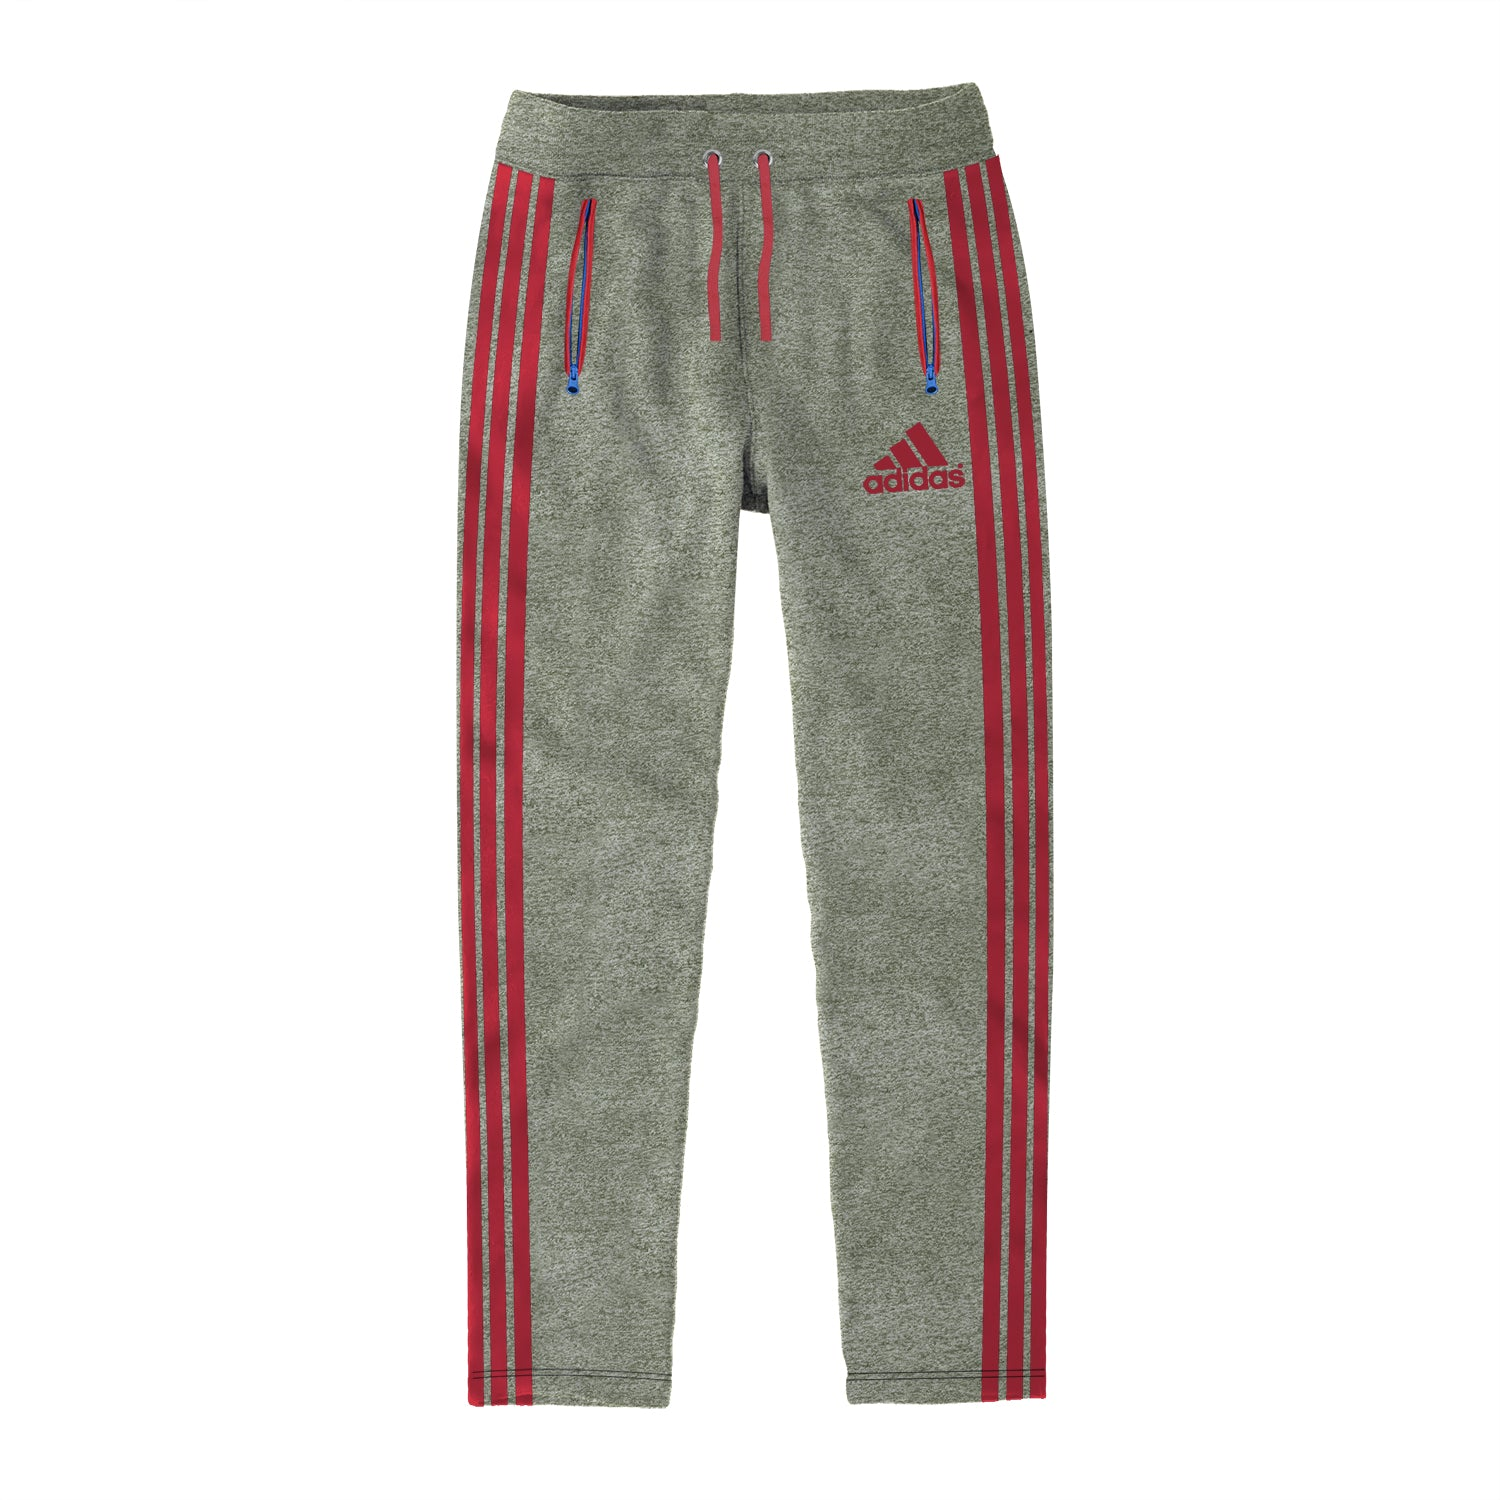 Adidas Single Jersey Regular Fit Trouser For Men-Olive Melange with Red Stripe-BE9440